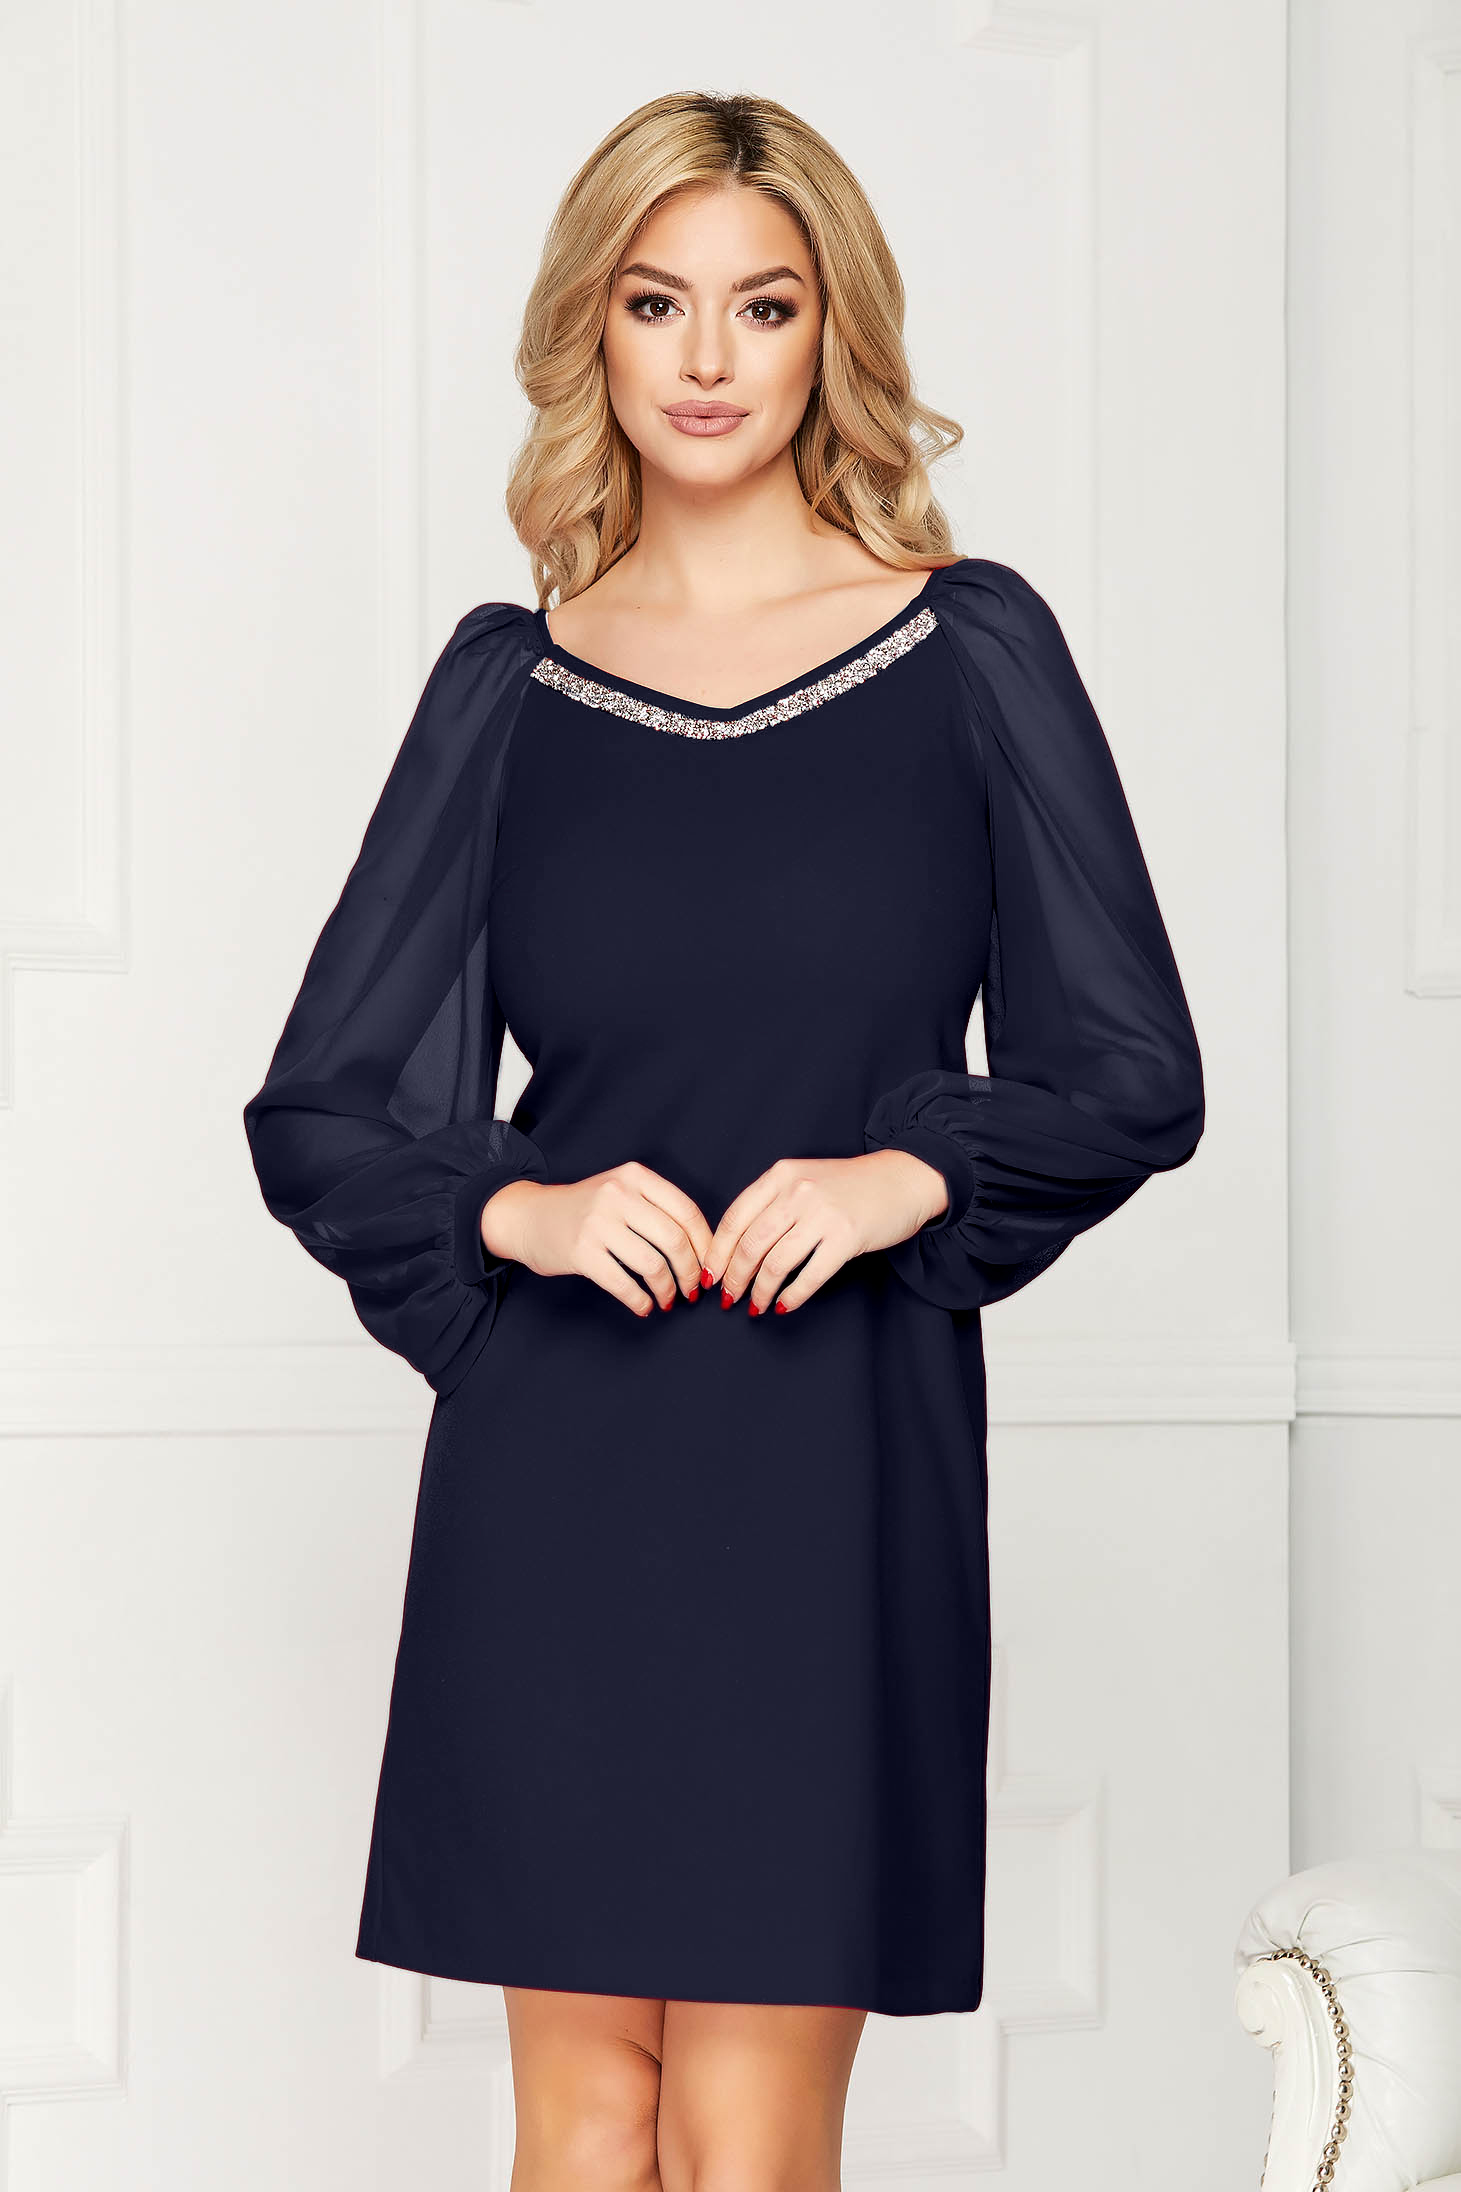 StarShinerS darkblue dress occasional short cut straight scuba from elastic fabric with veil sleeves with v-neckline with embellished accessories